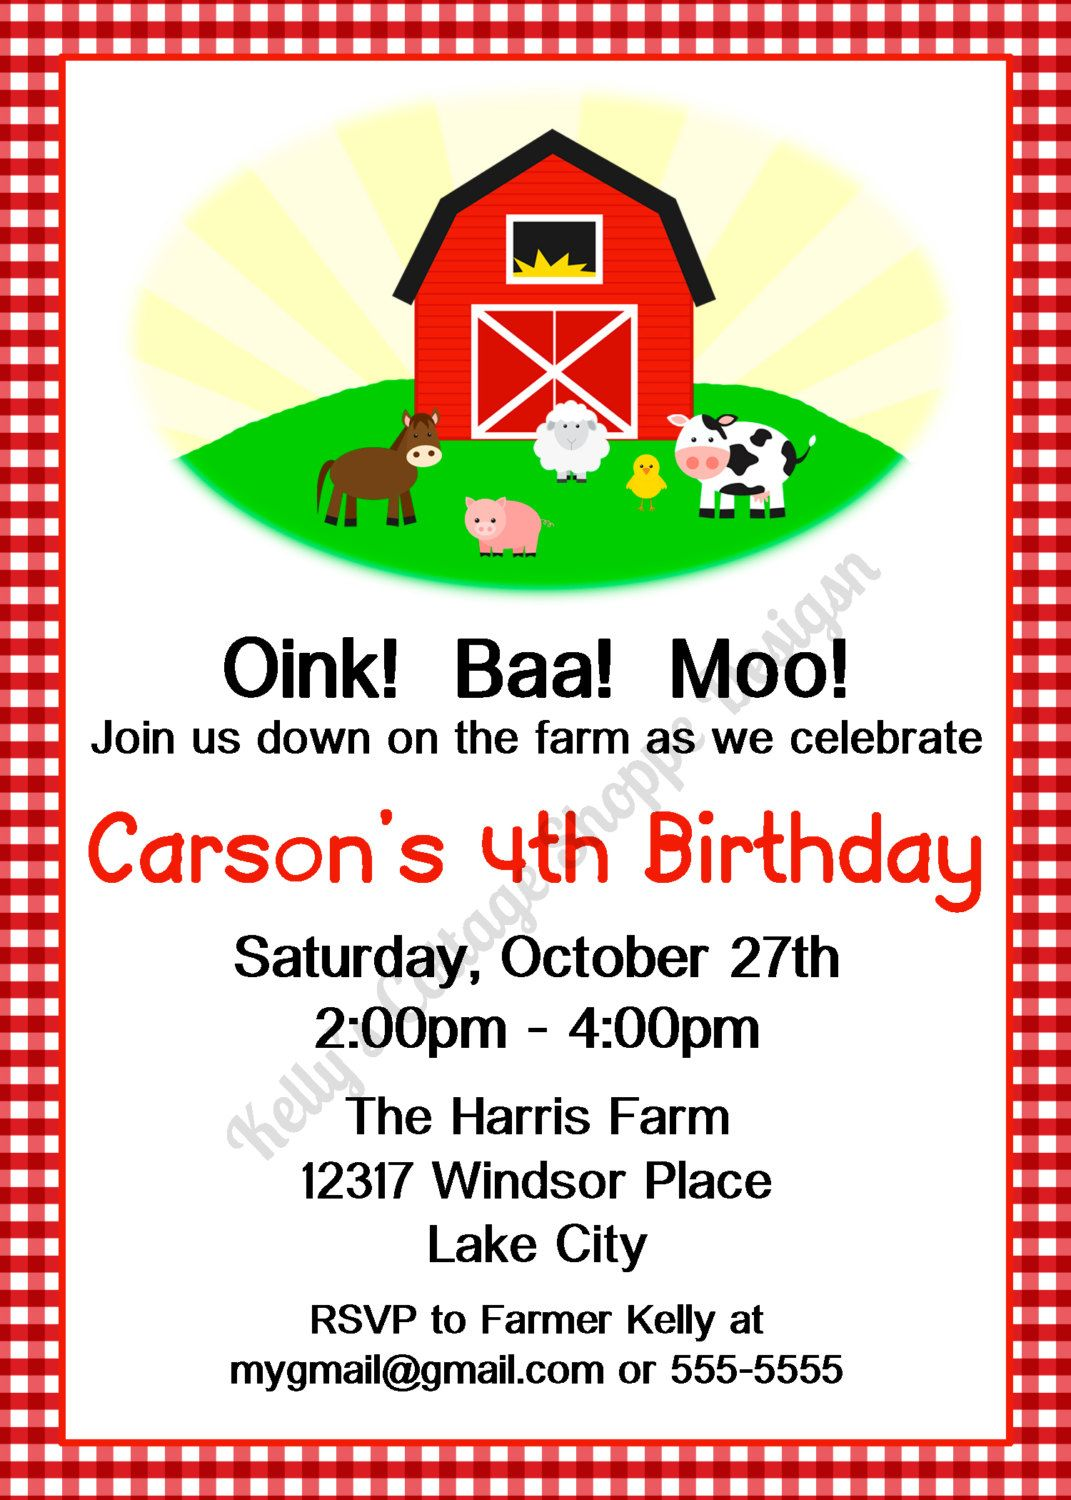 Barnyard/Farm Animal Birthday Party Invitation with Red Barn$9.50 ...